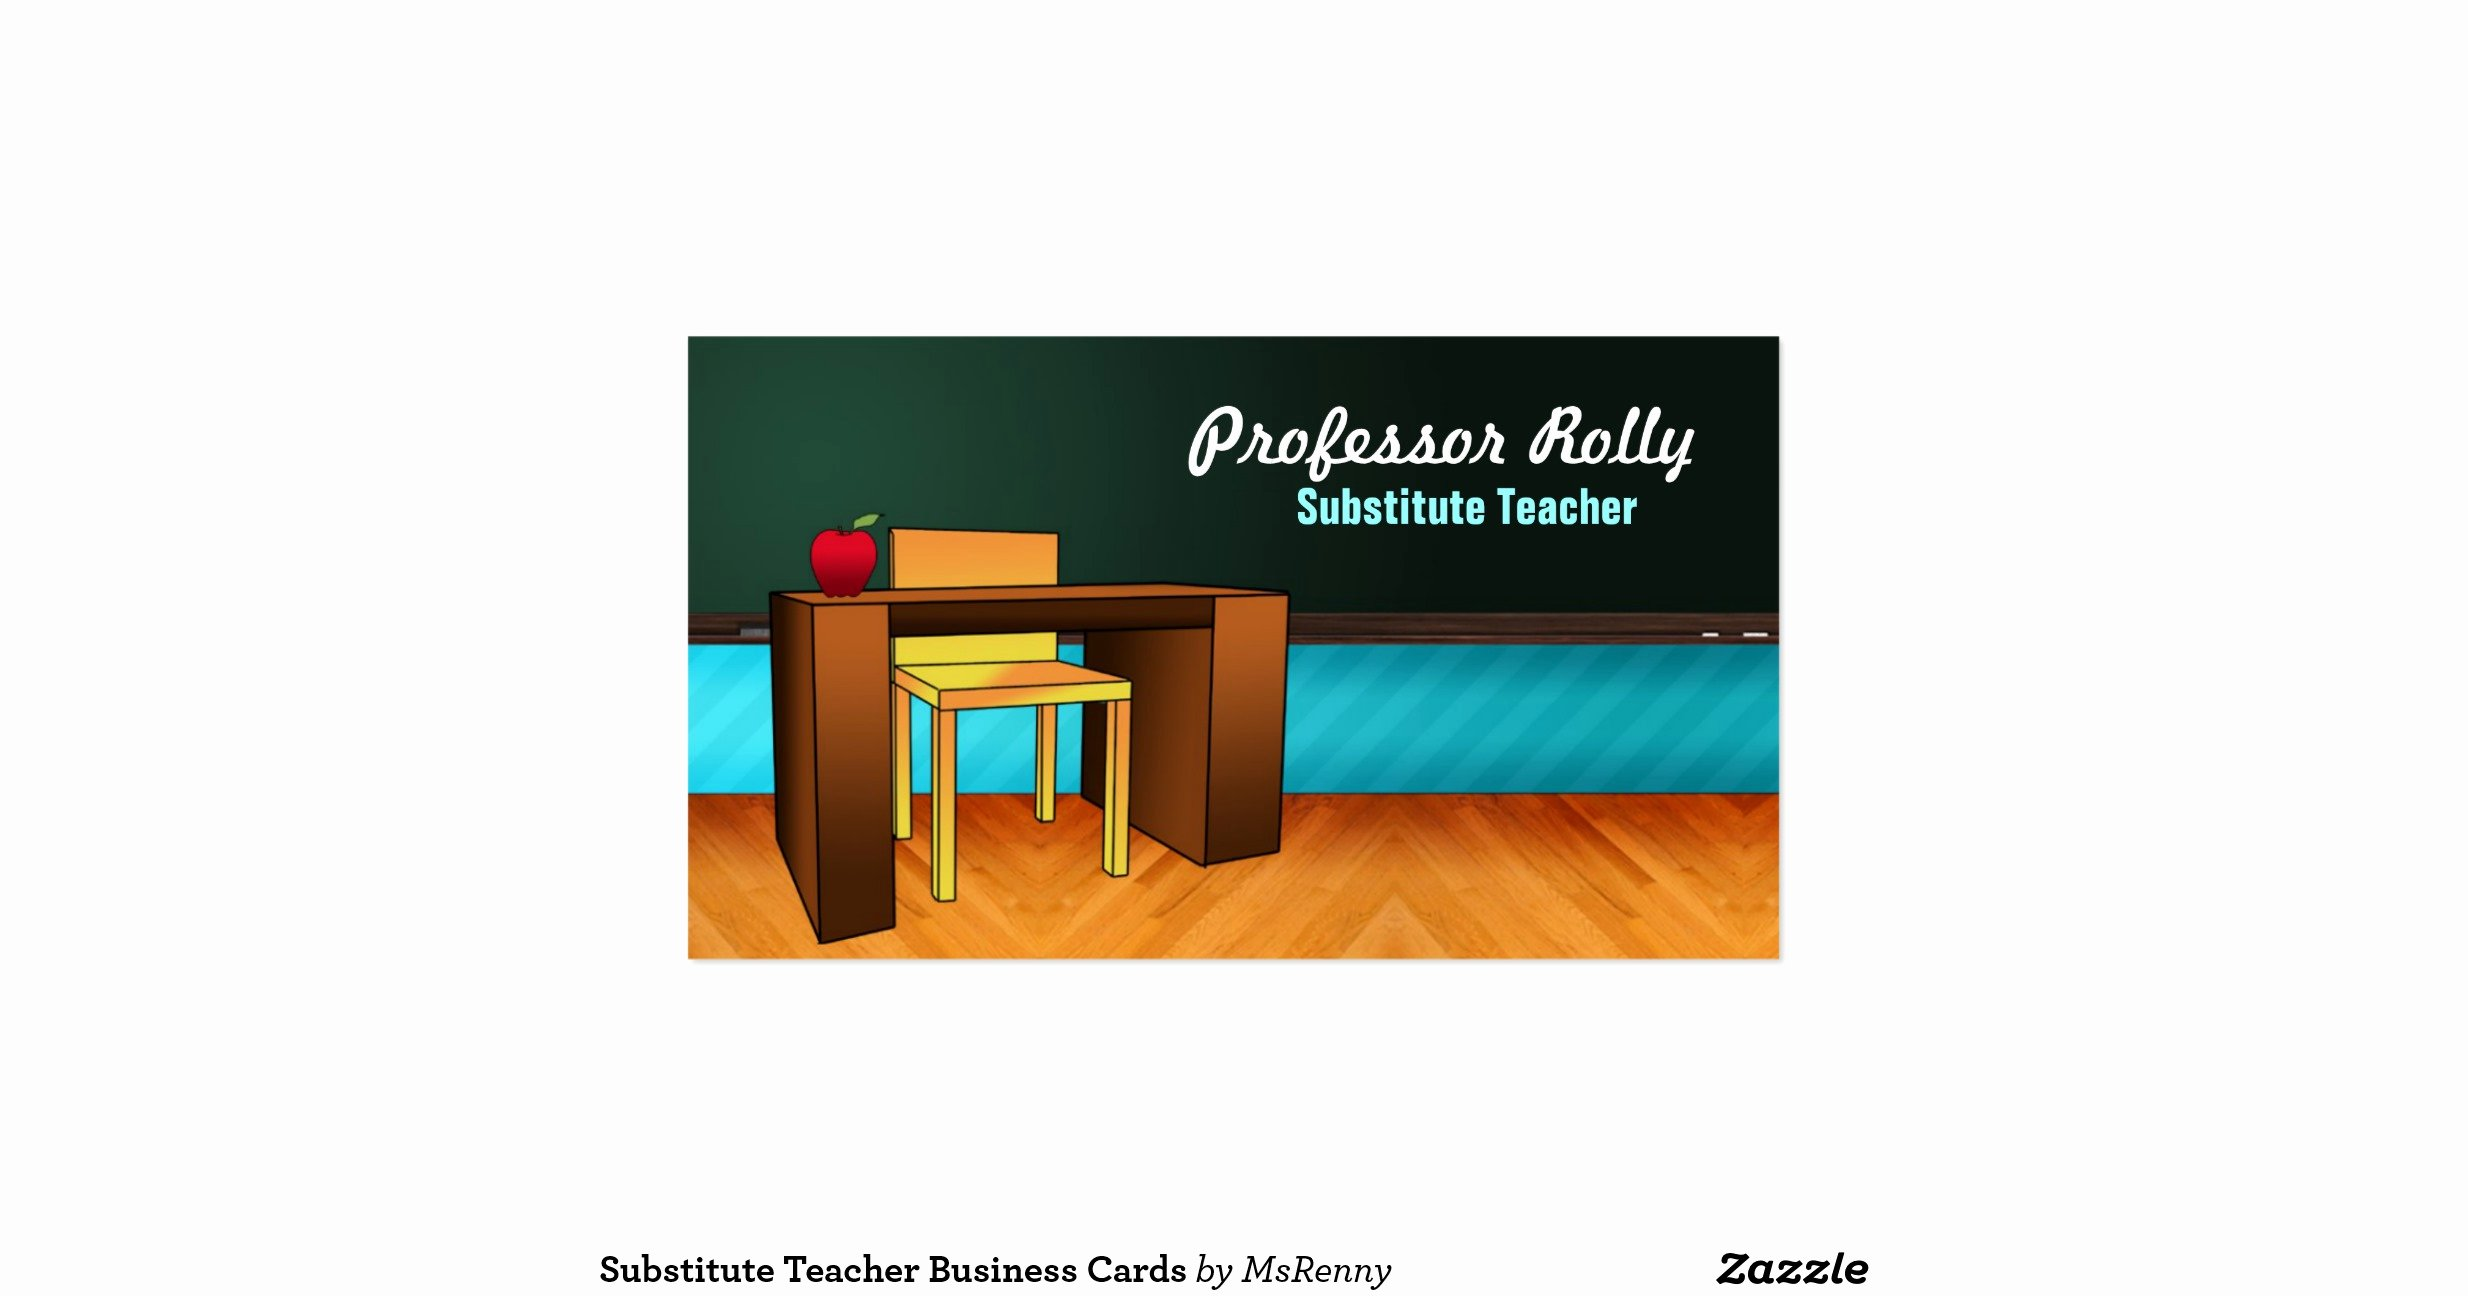 Substitute Teacher Business Card Examples Best Of Substitute Teacher Business Cards R1c52ff45f6934ba88bf Ca88d I579t 8byvr 1200 View